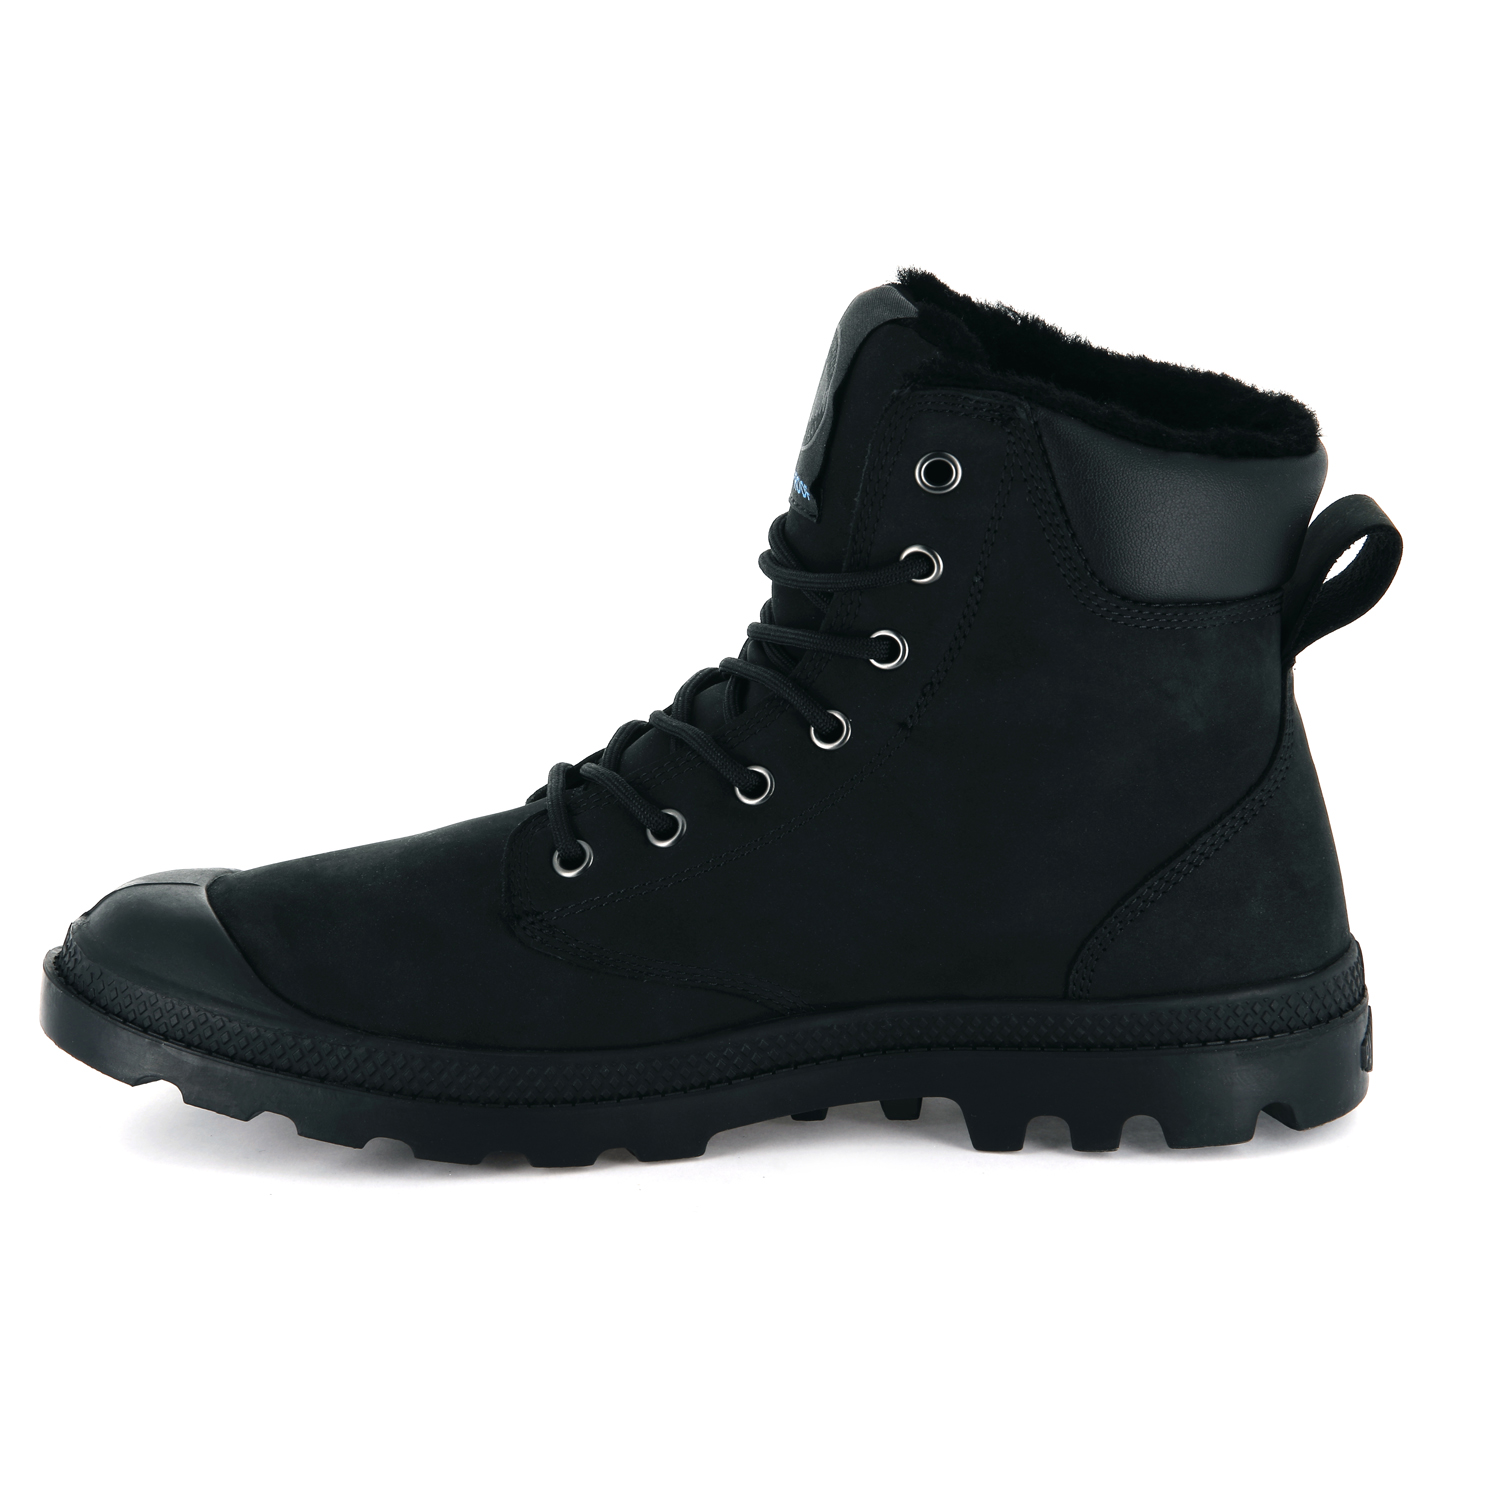 Palladium-Mens-Pampa-Sport-Cuff-Waterproof-Suede-Leather-Shoe-Wool-Lined-Boots thumbnail 3